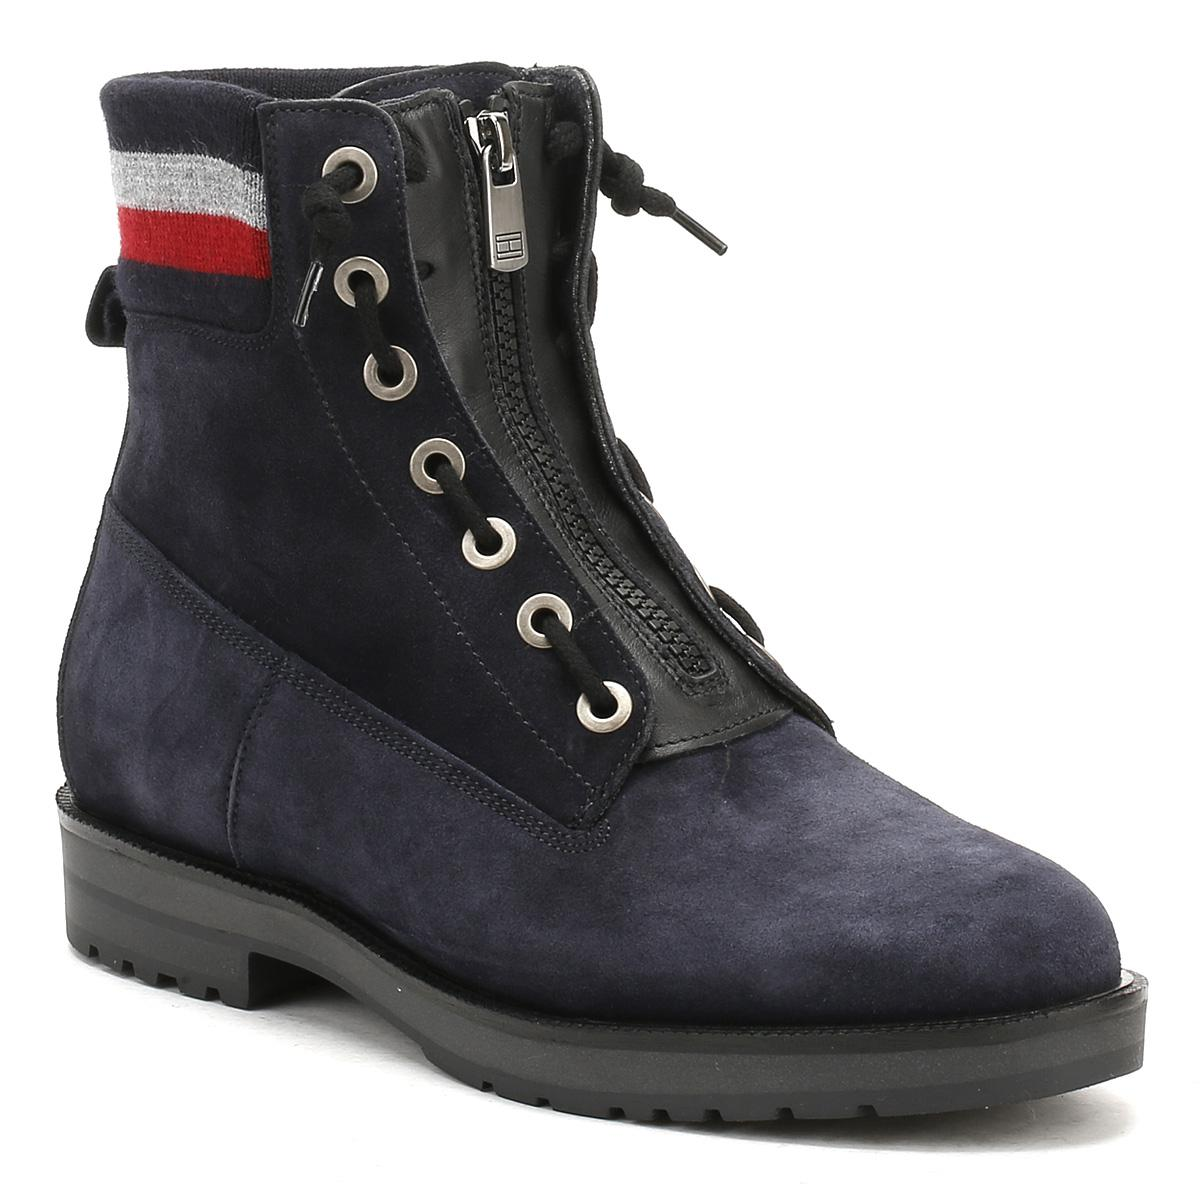 0e6c4ab4d6e18 Womens Midnight Blue West 9b1 Ankle Boots Women s Mid Boots In Blue